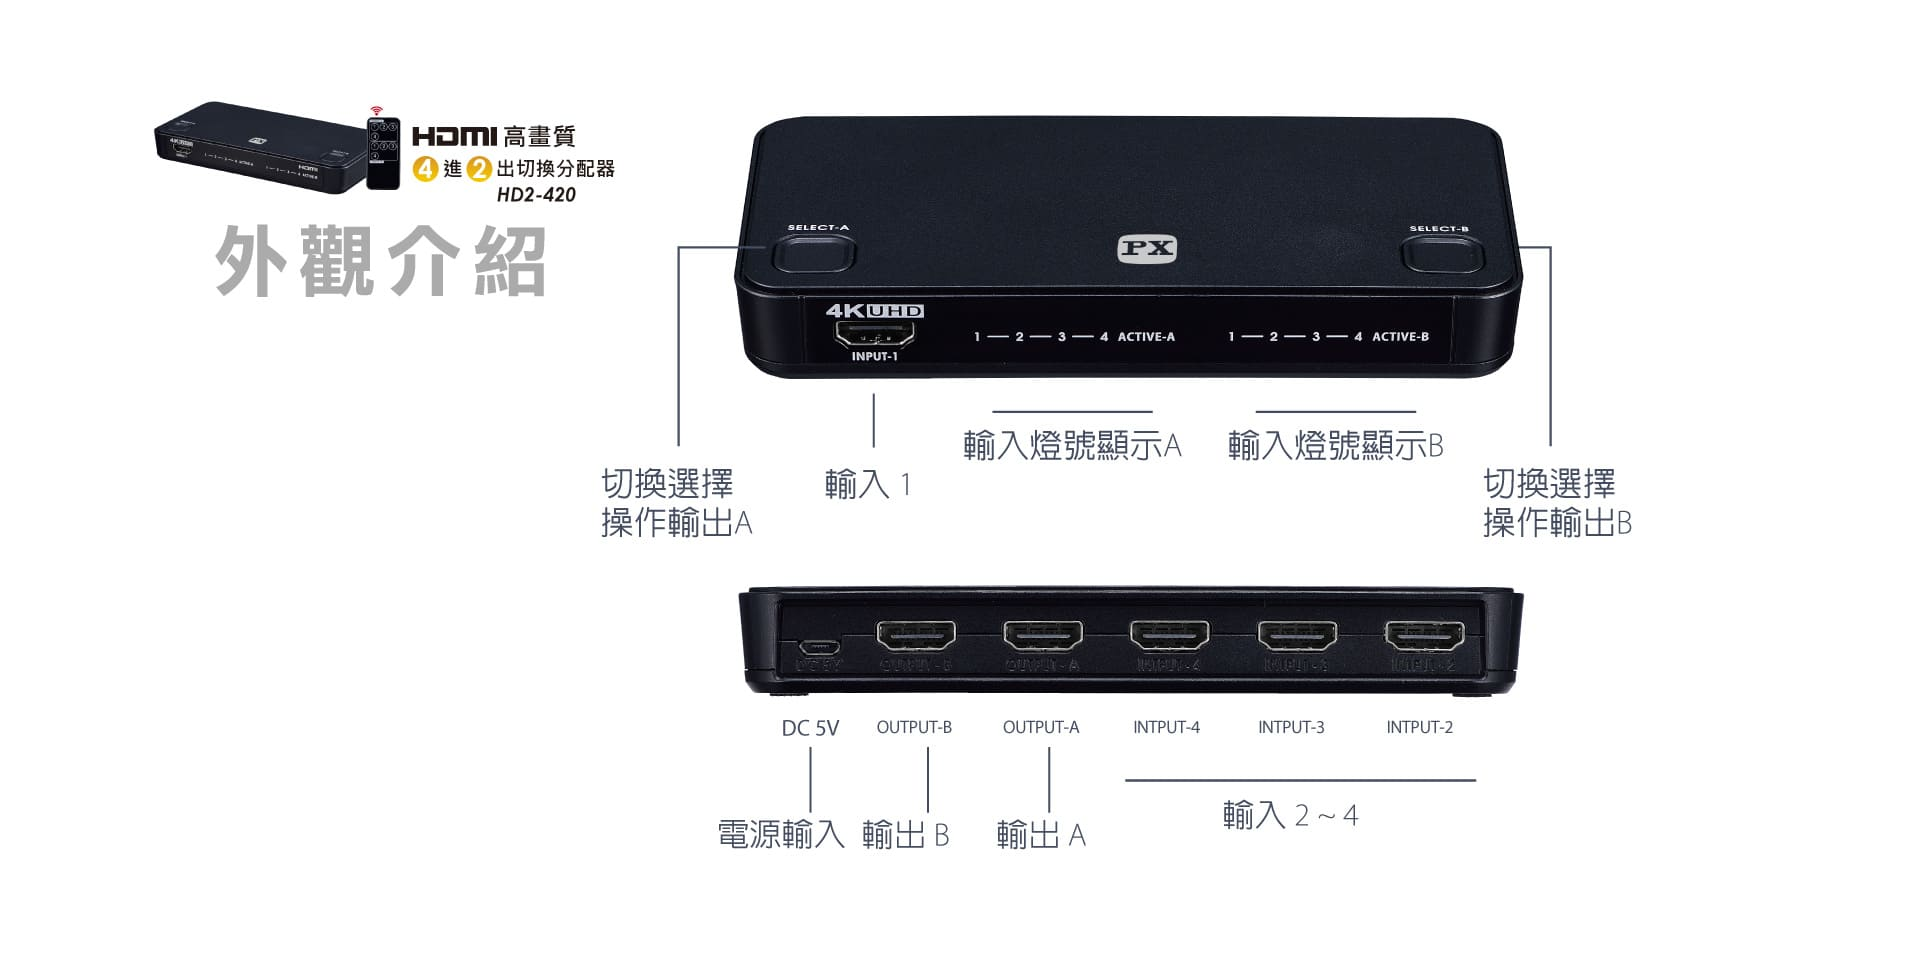 proimages/product/HDMI/HD2-420/HD2-420_06.jpg